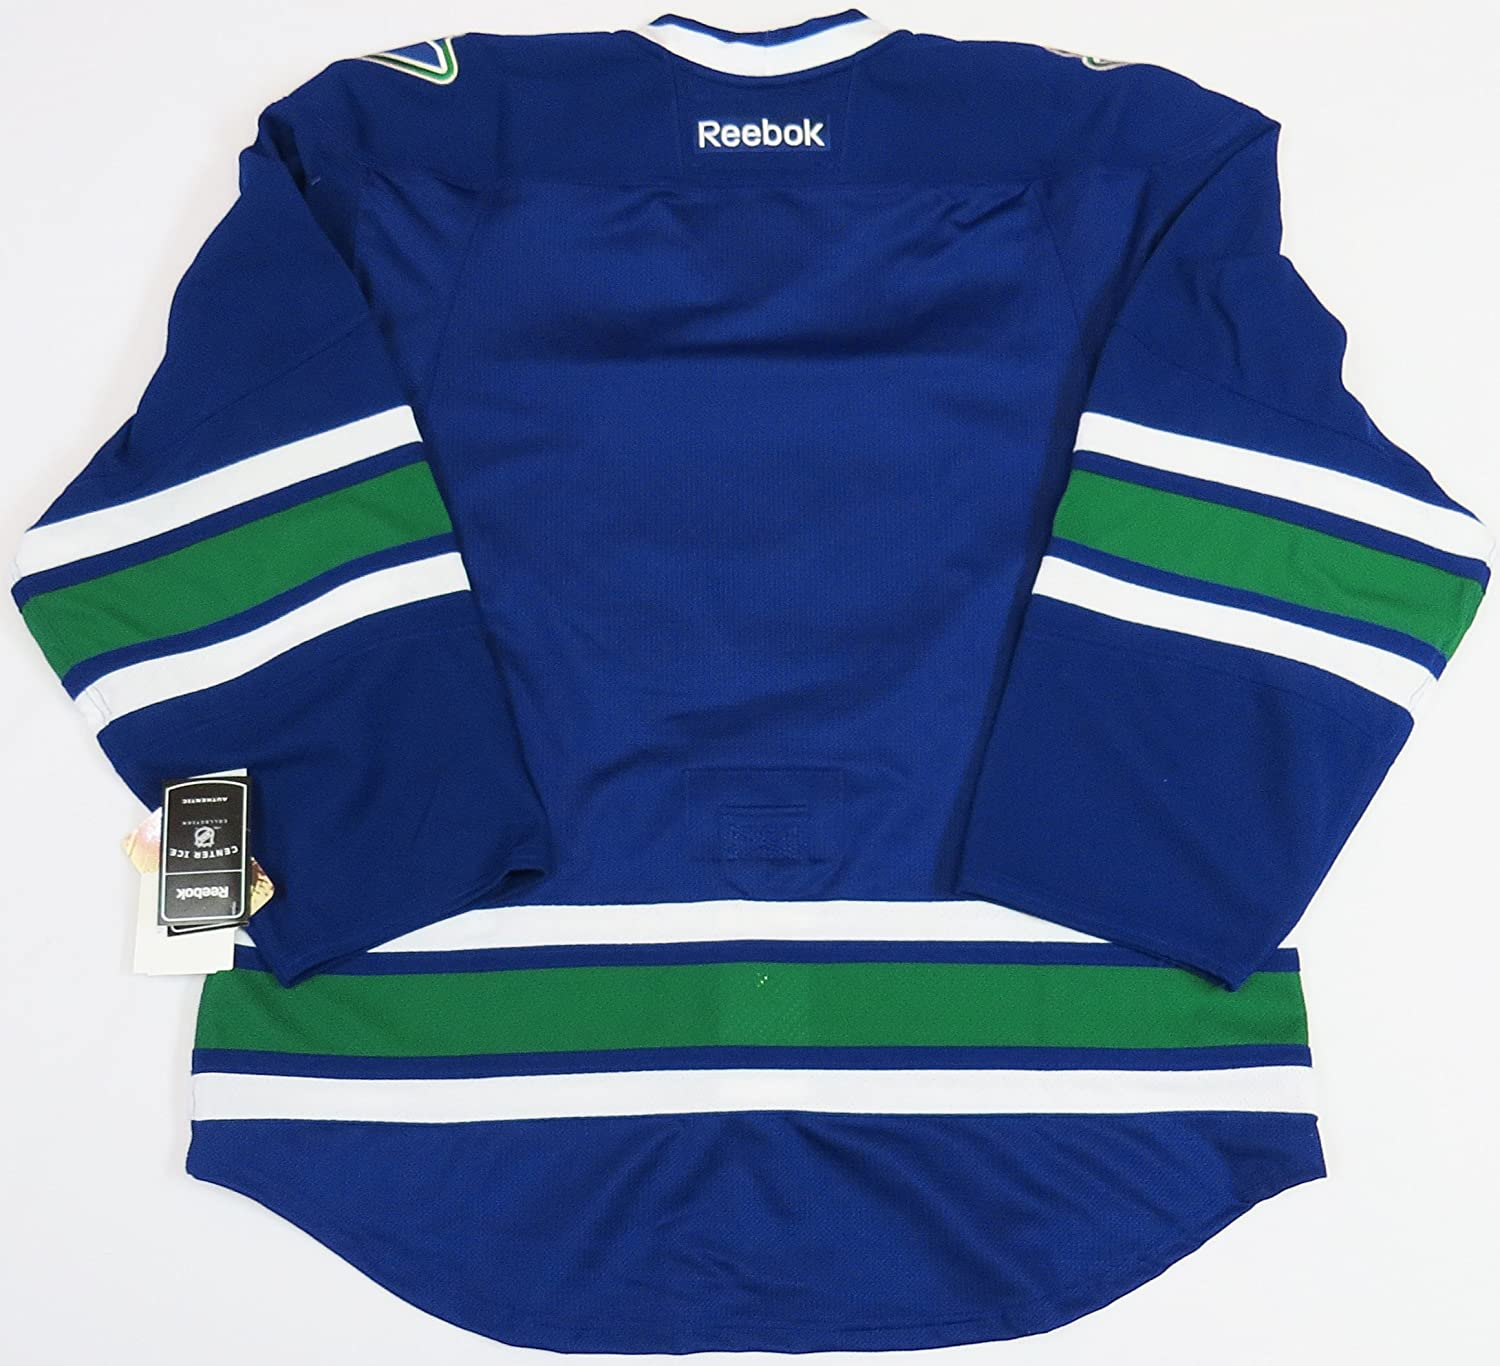 finest selection d320d 0e2ad Vancouver Canucks Authentic Third Reebok Edge 2.0 7287 Hockey Jersey